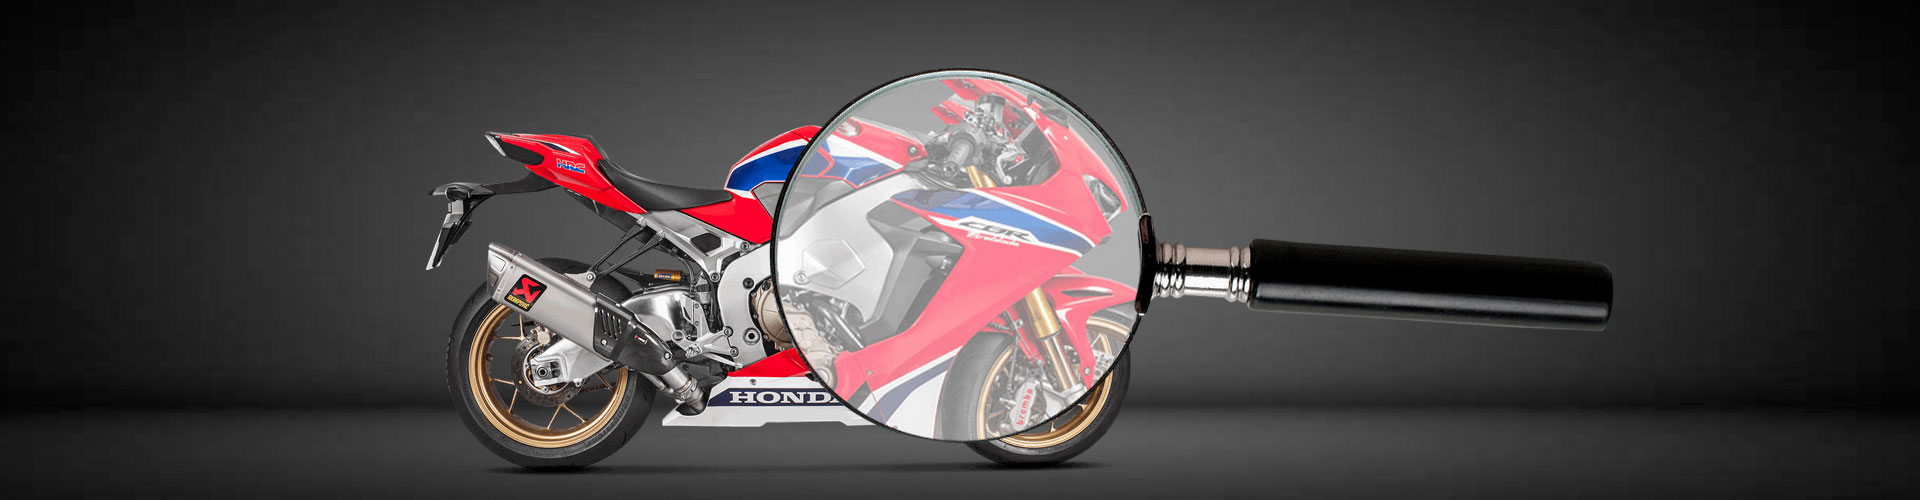 Motorcycle Sourcing - Can't find what you're looking for? We'll help